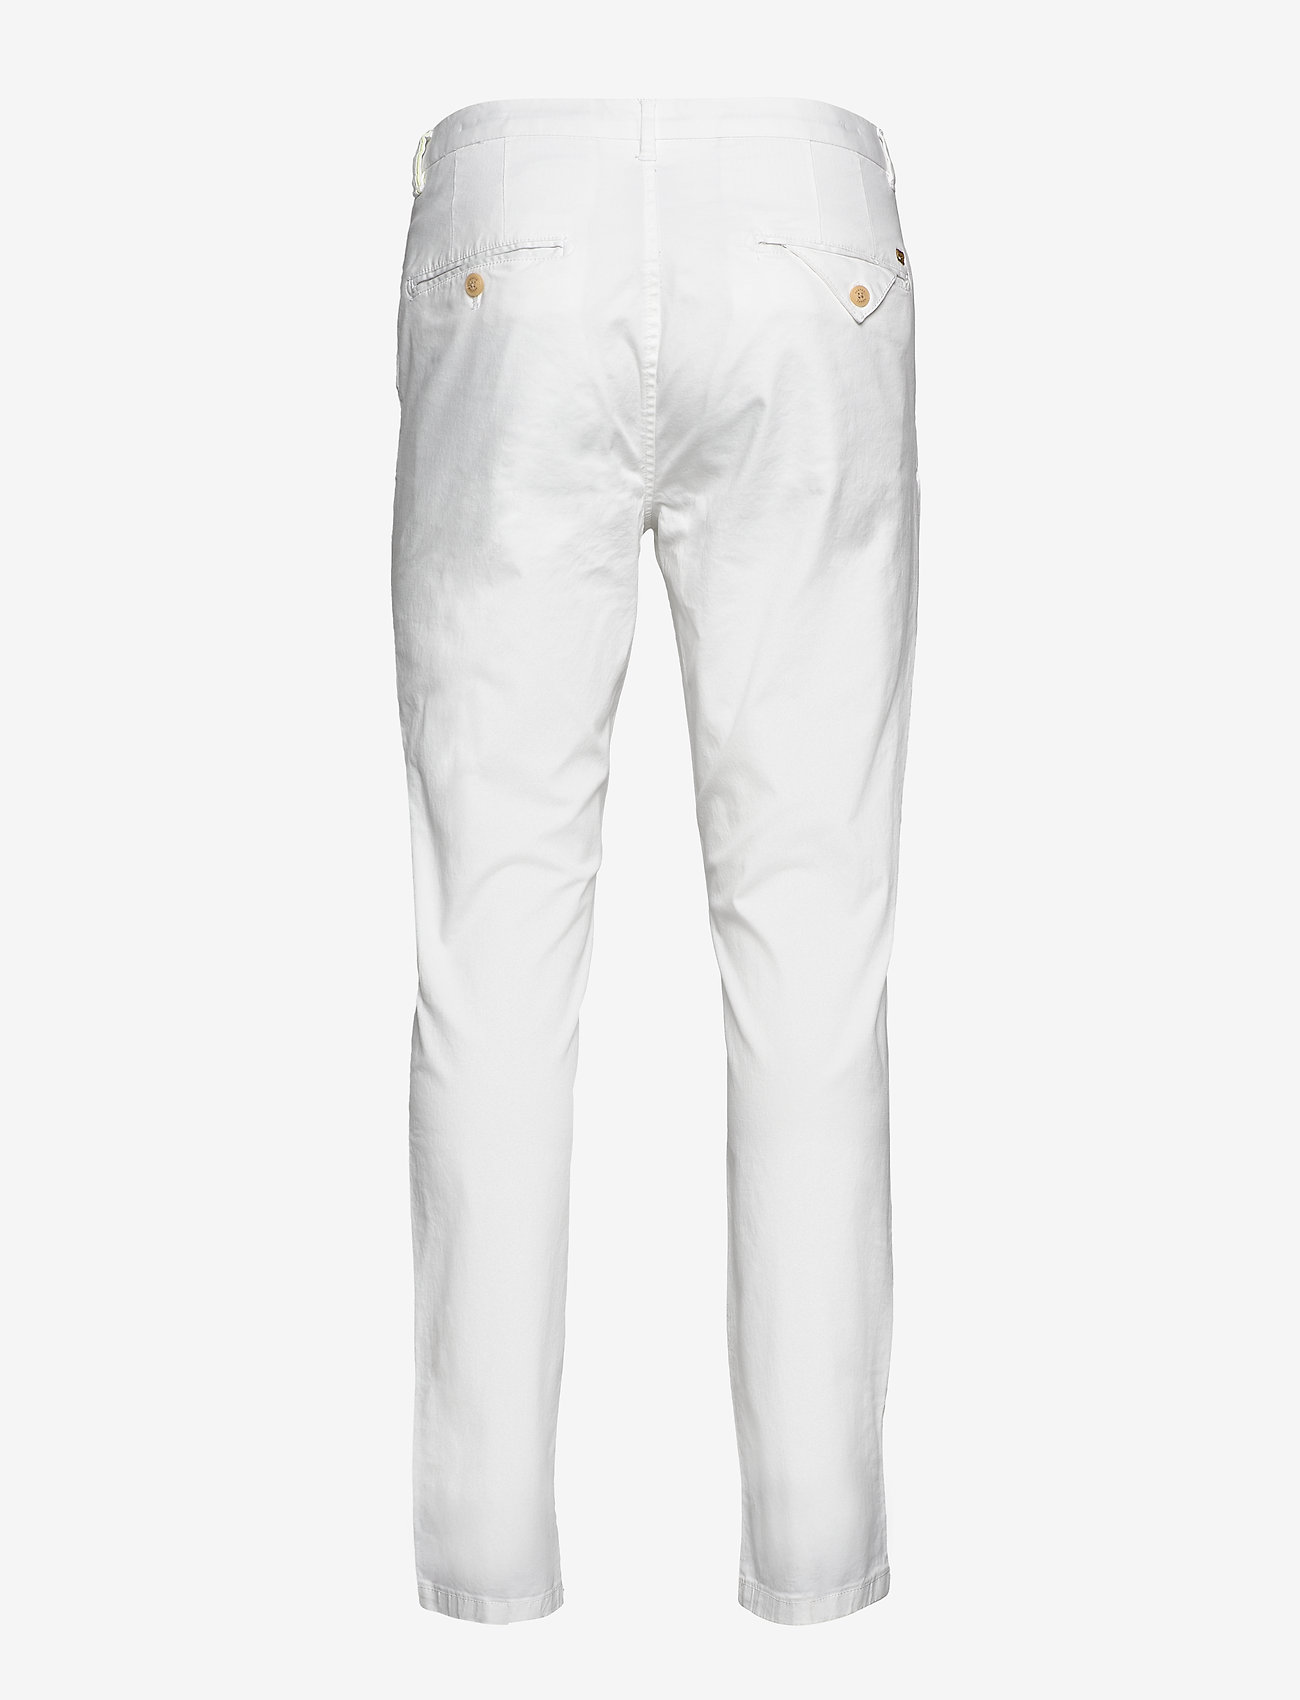 Scotch & Soda - STUART- Classic chino - chinos - denim white - 1